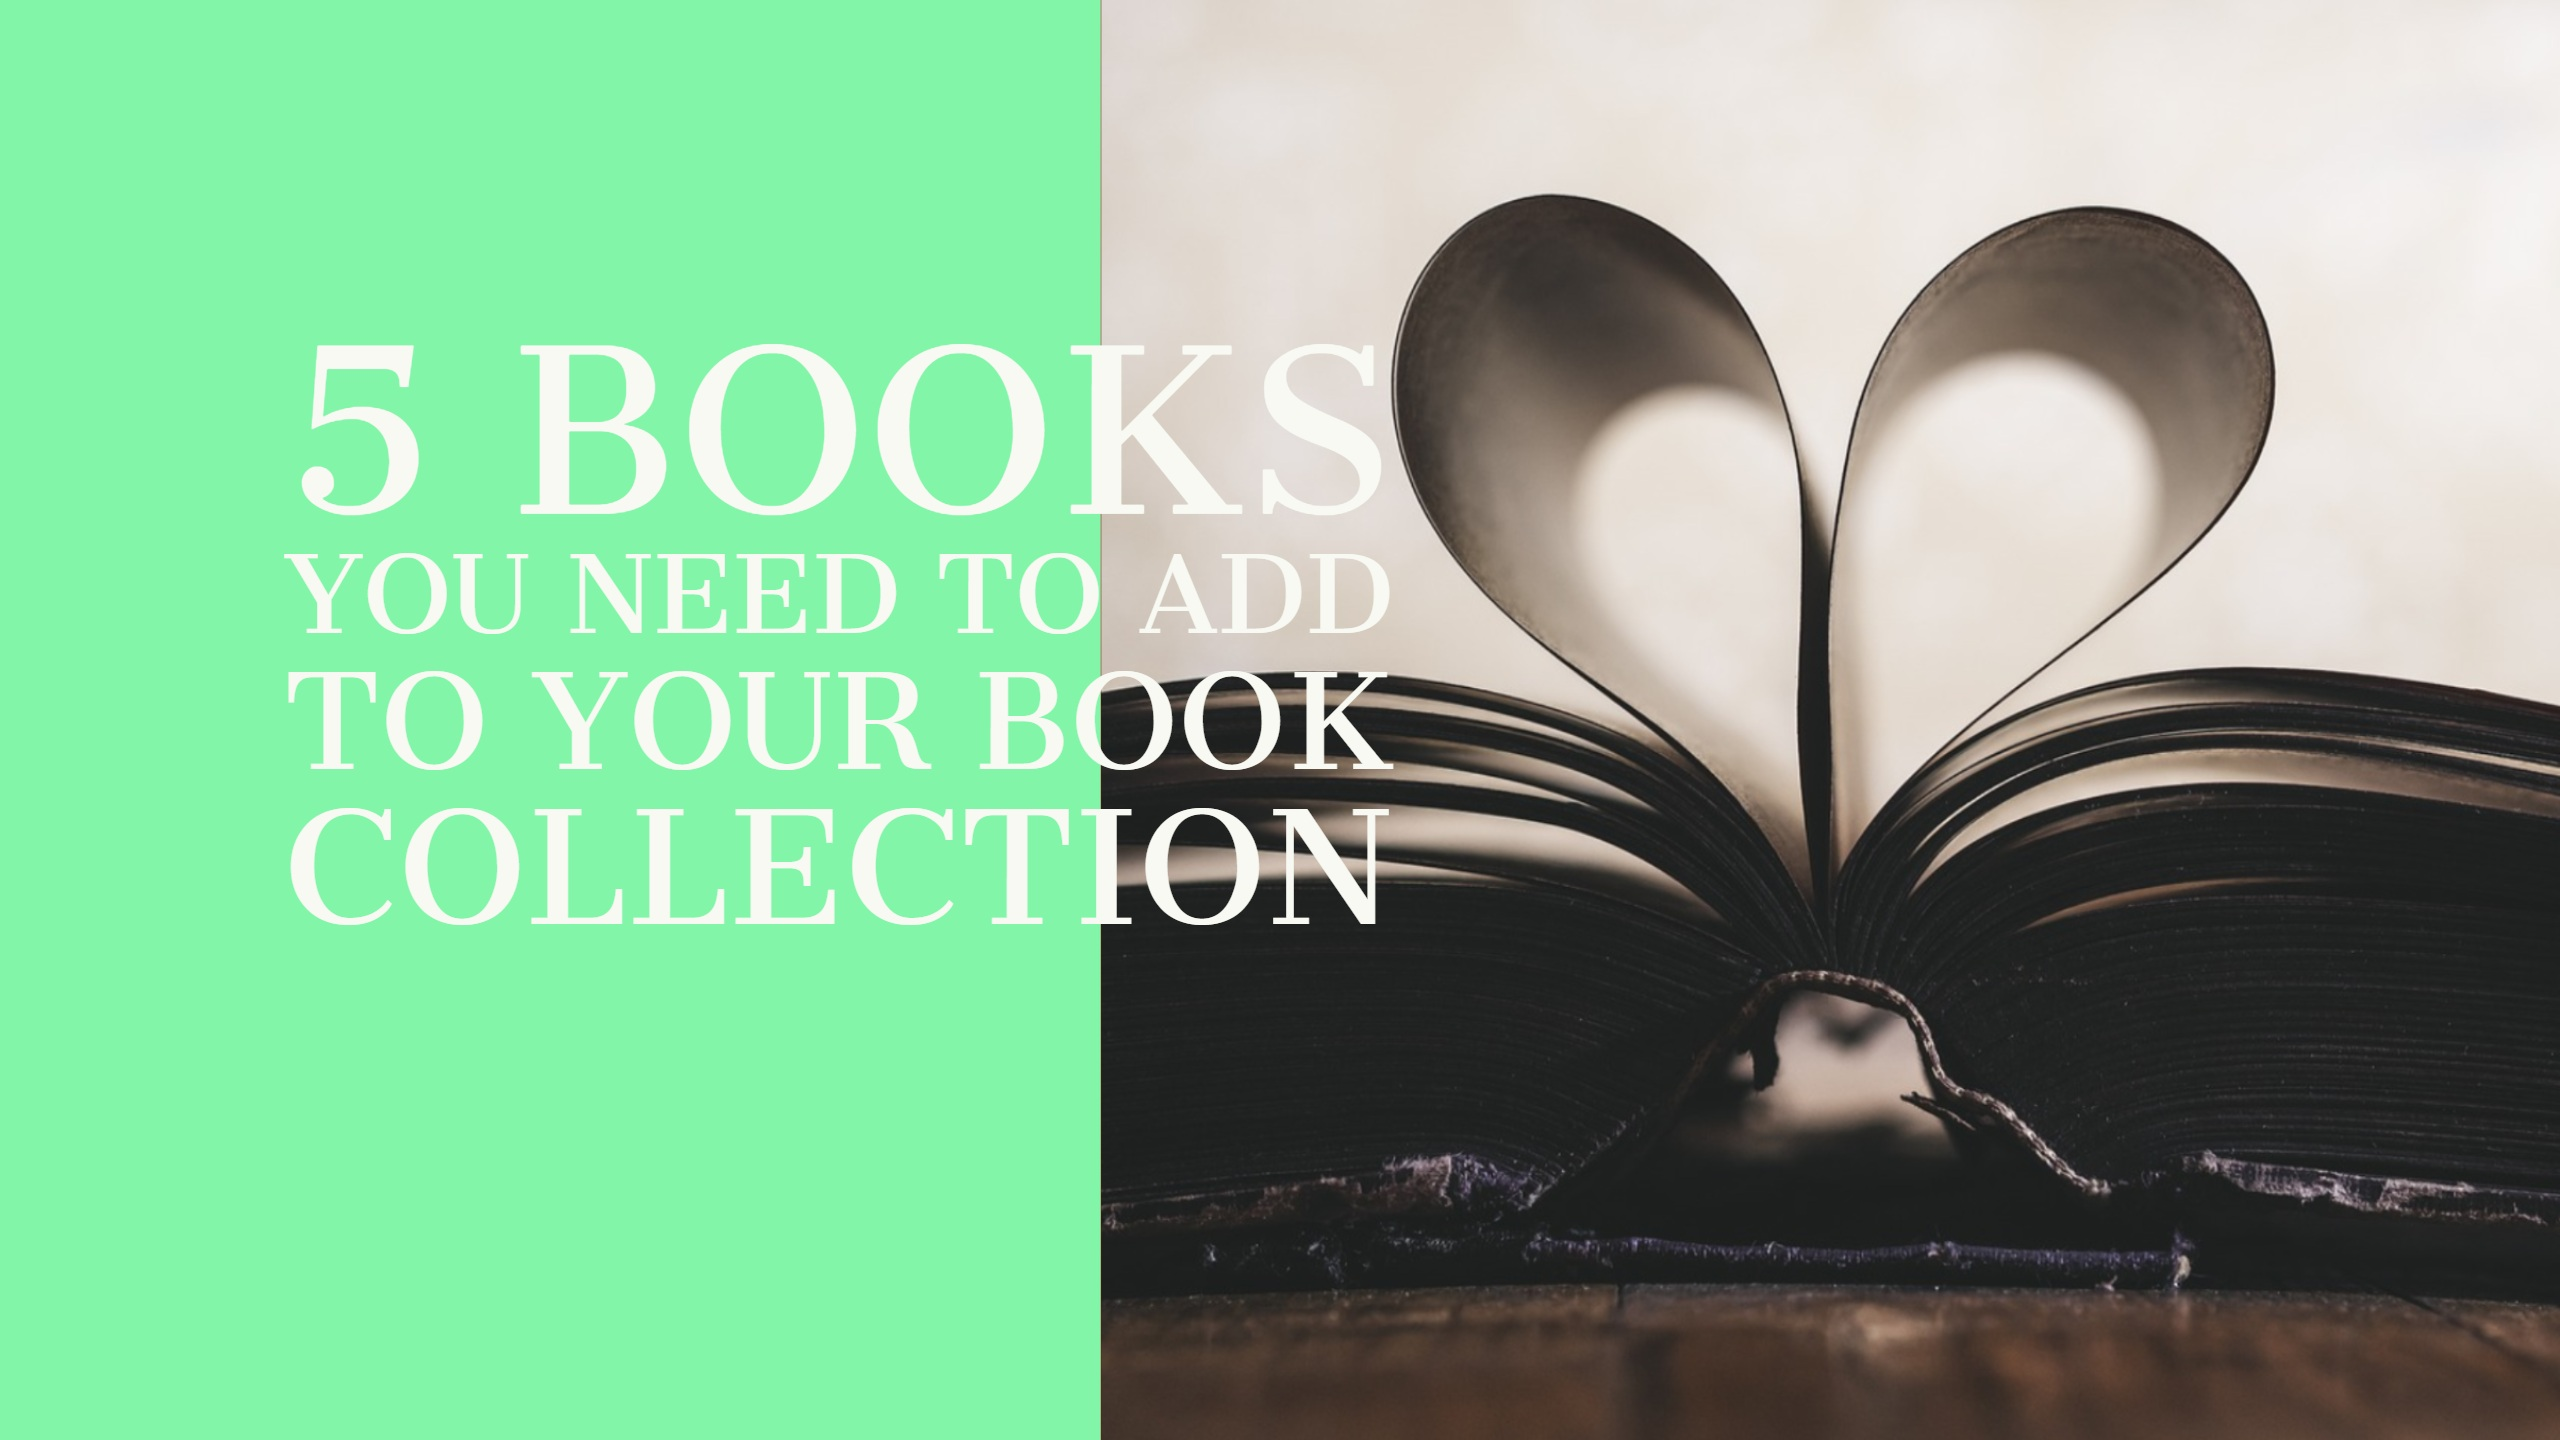 5 Books to Add To Your Book Collection